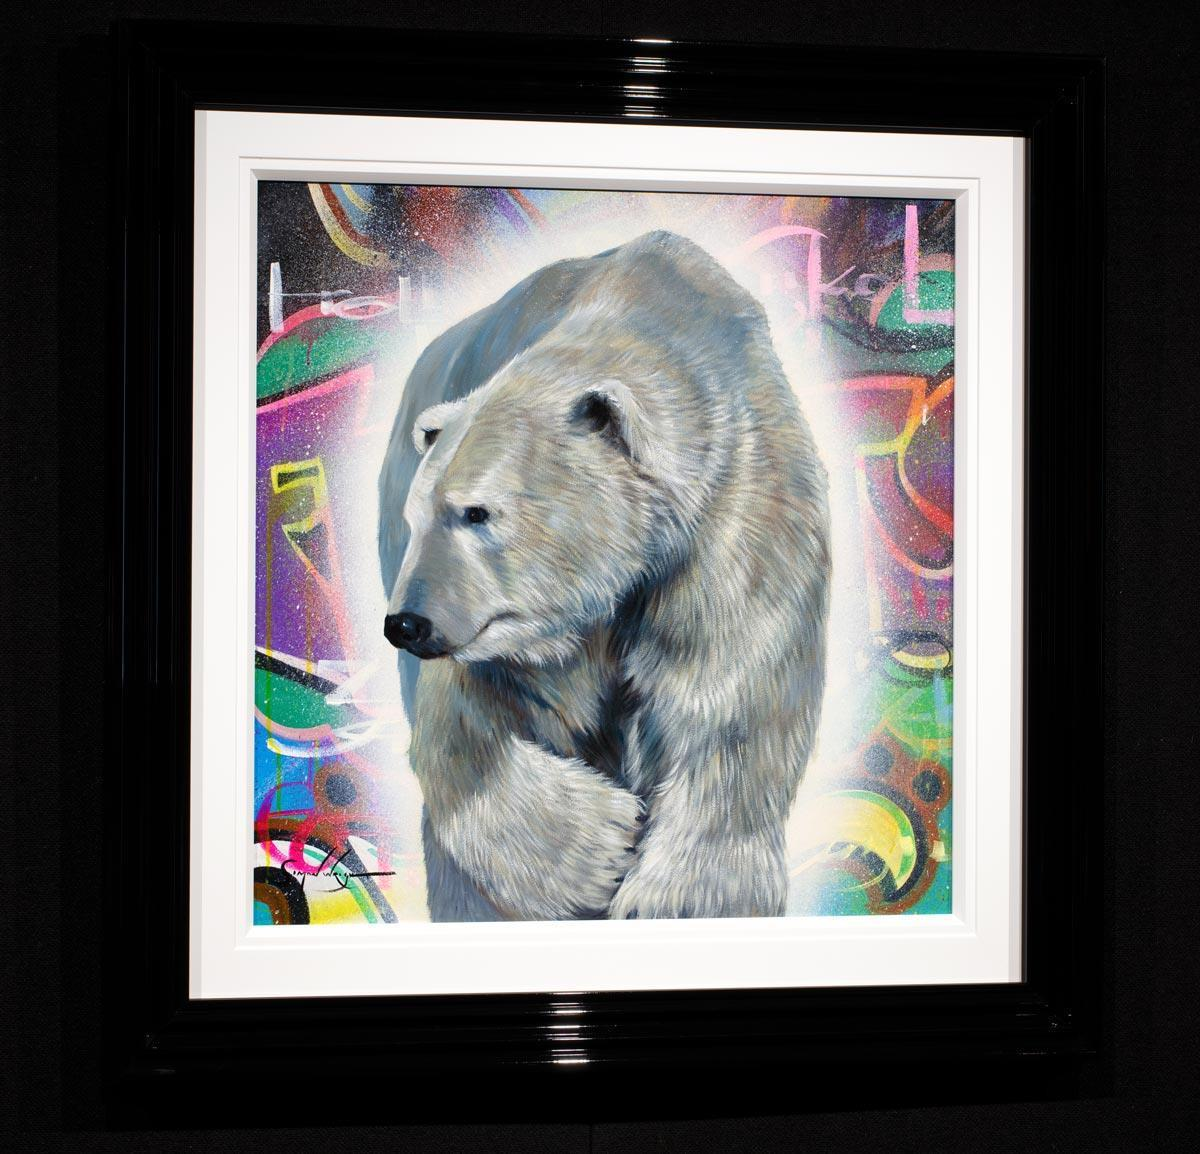 Cold As Ice - Original Simon Wright Framed